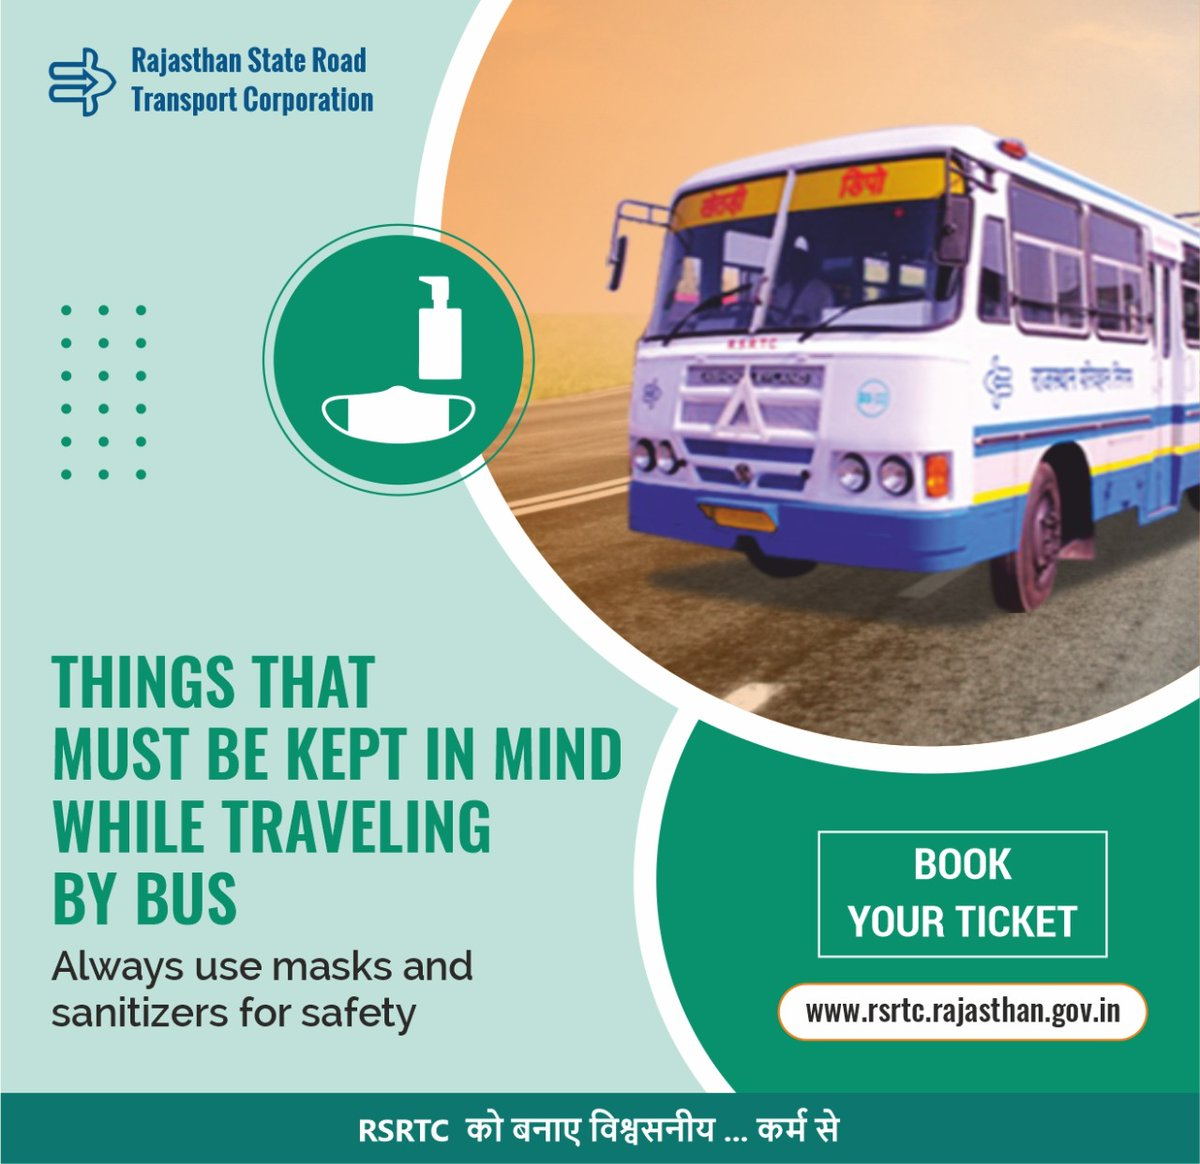 Here are a few rules that passengers are also requested to follow. Be responsible and stay safe while you travel with RSRTC Visit-  #RSRTC #ApkaRSRTCApkeSath #RajasthanRoadways #sundayvibes #SundayThoughts #SundayMotivation #COVID19 #pandemic